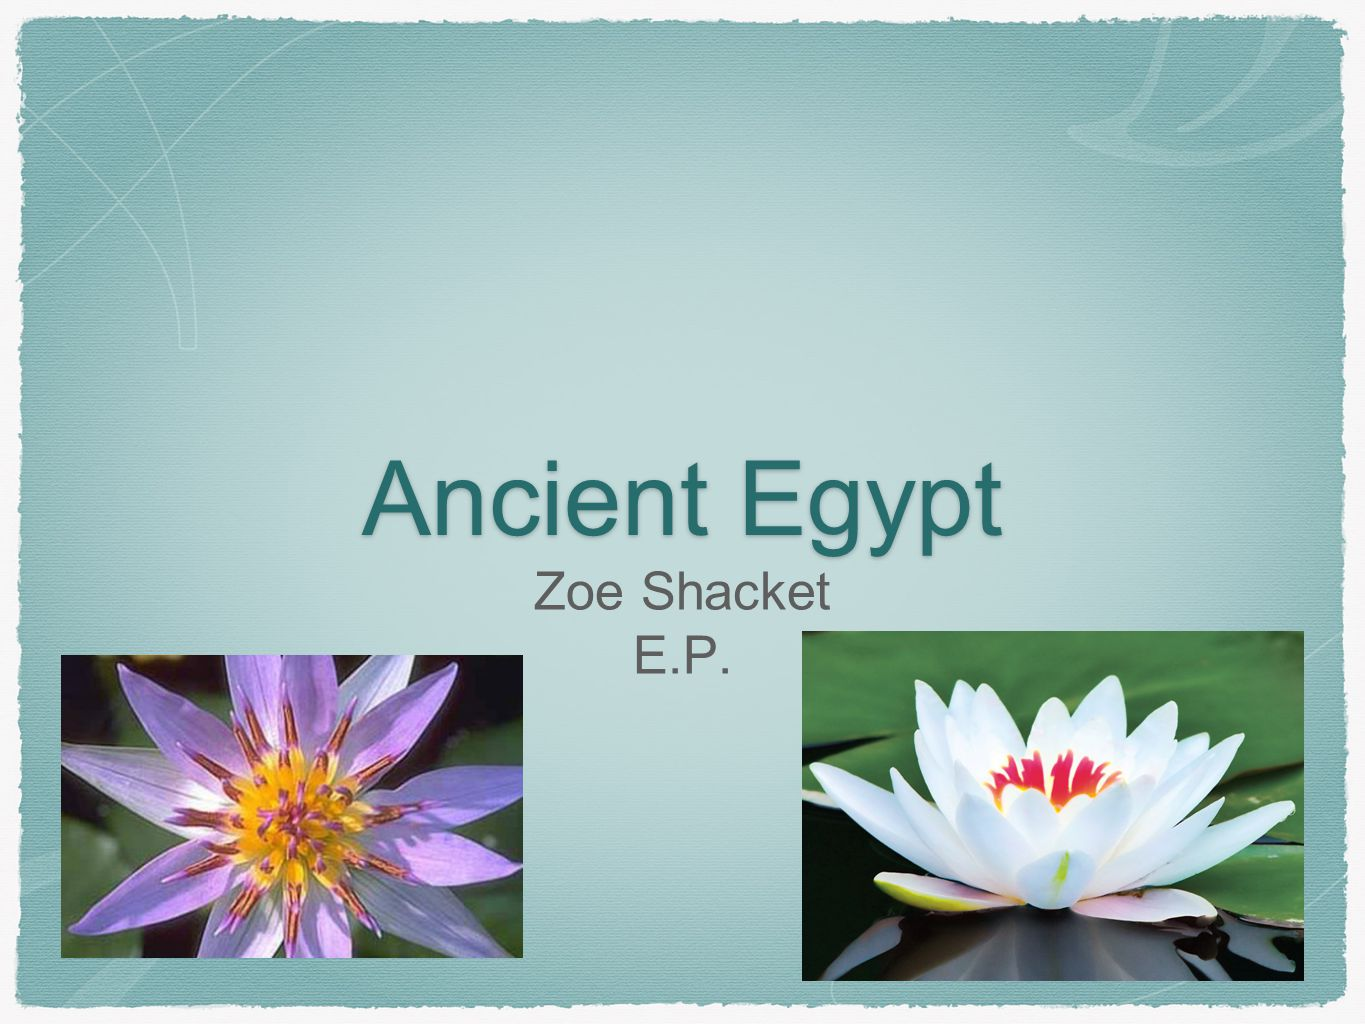 Ancient Egypt Zoe Shacket Ep Ppt Video Online Download